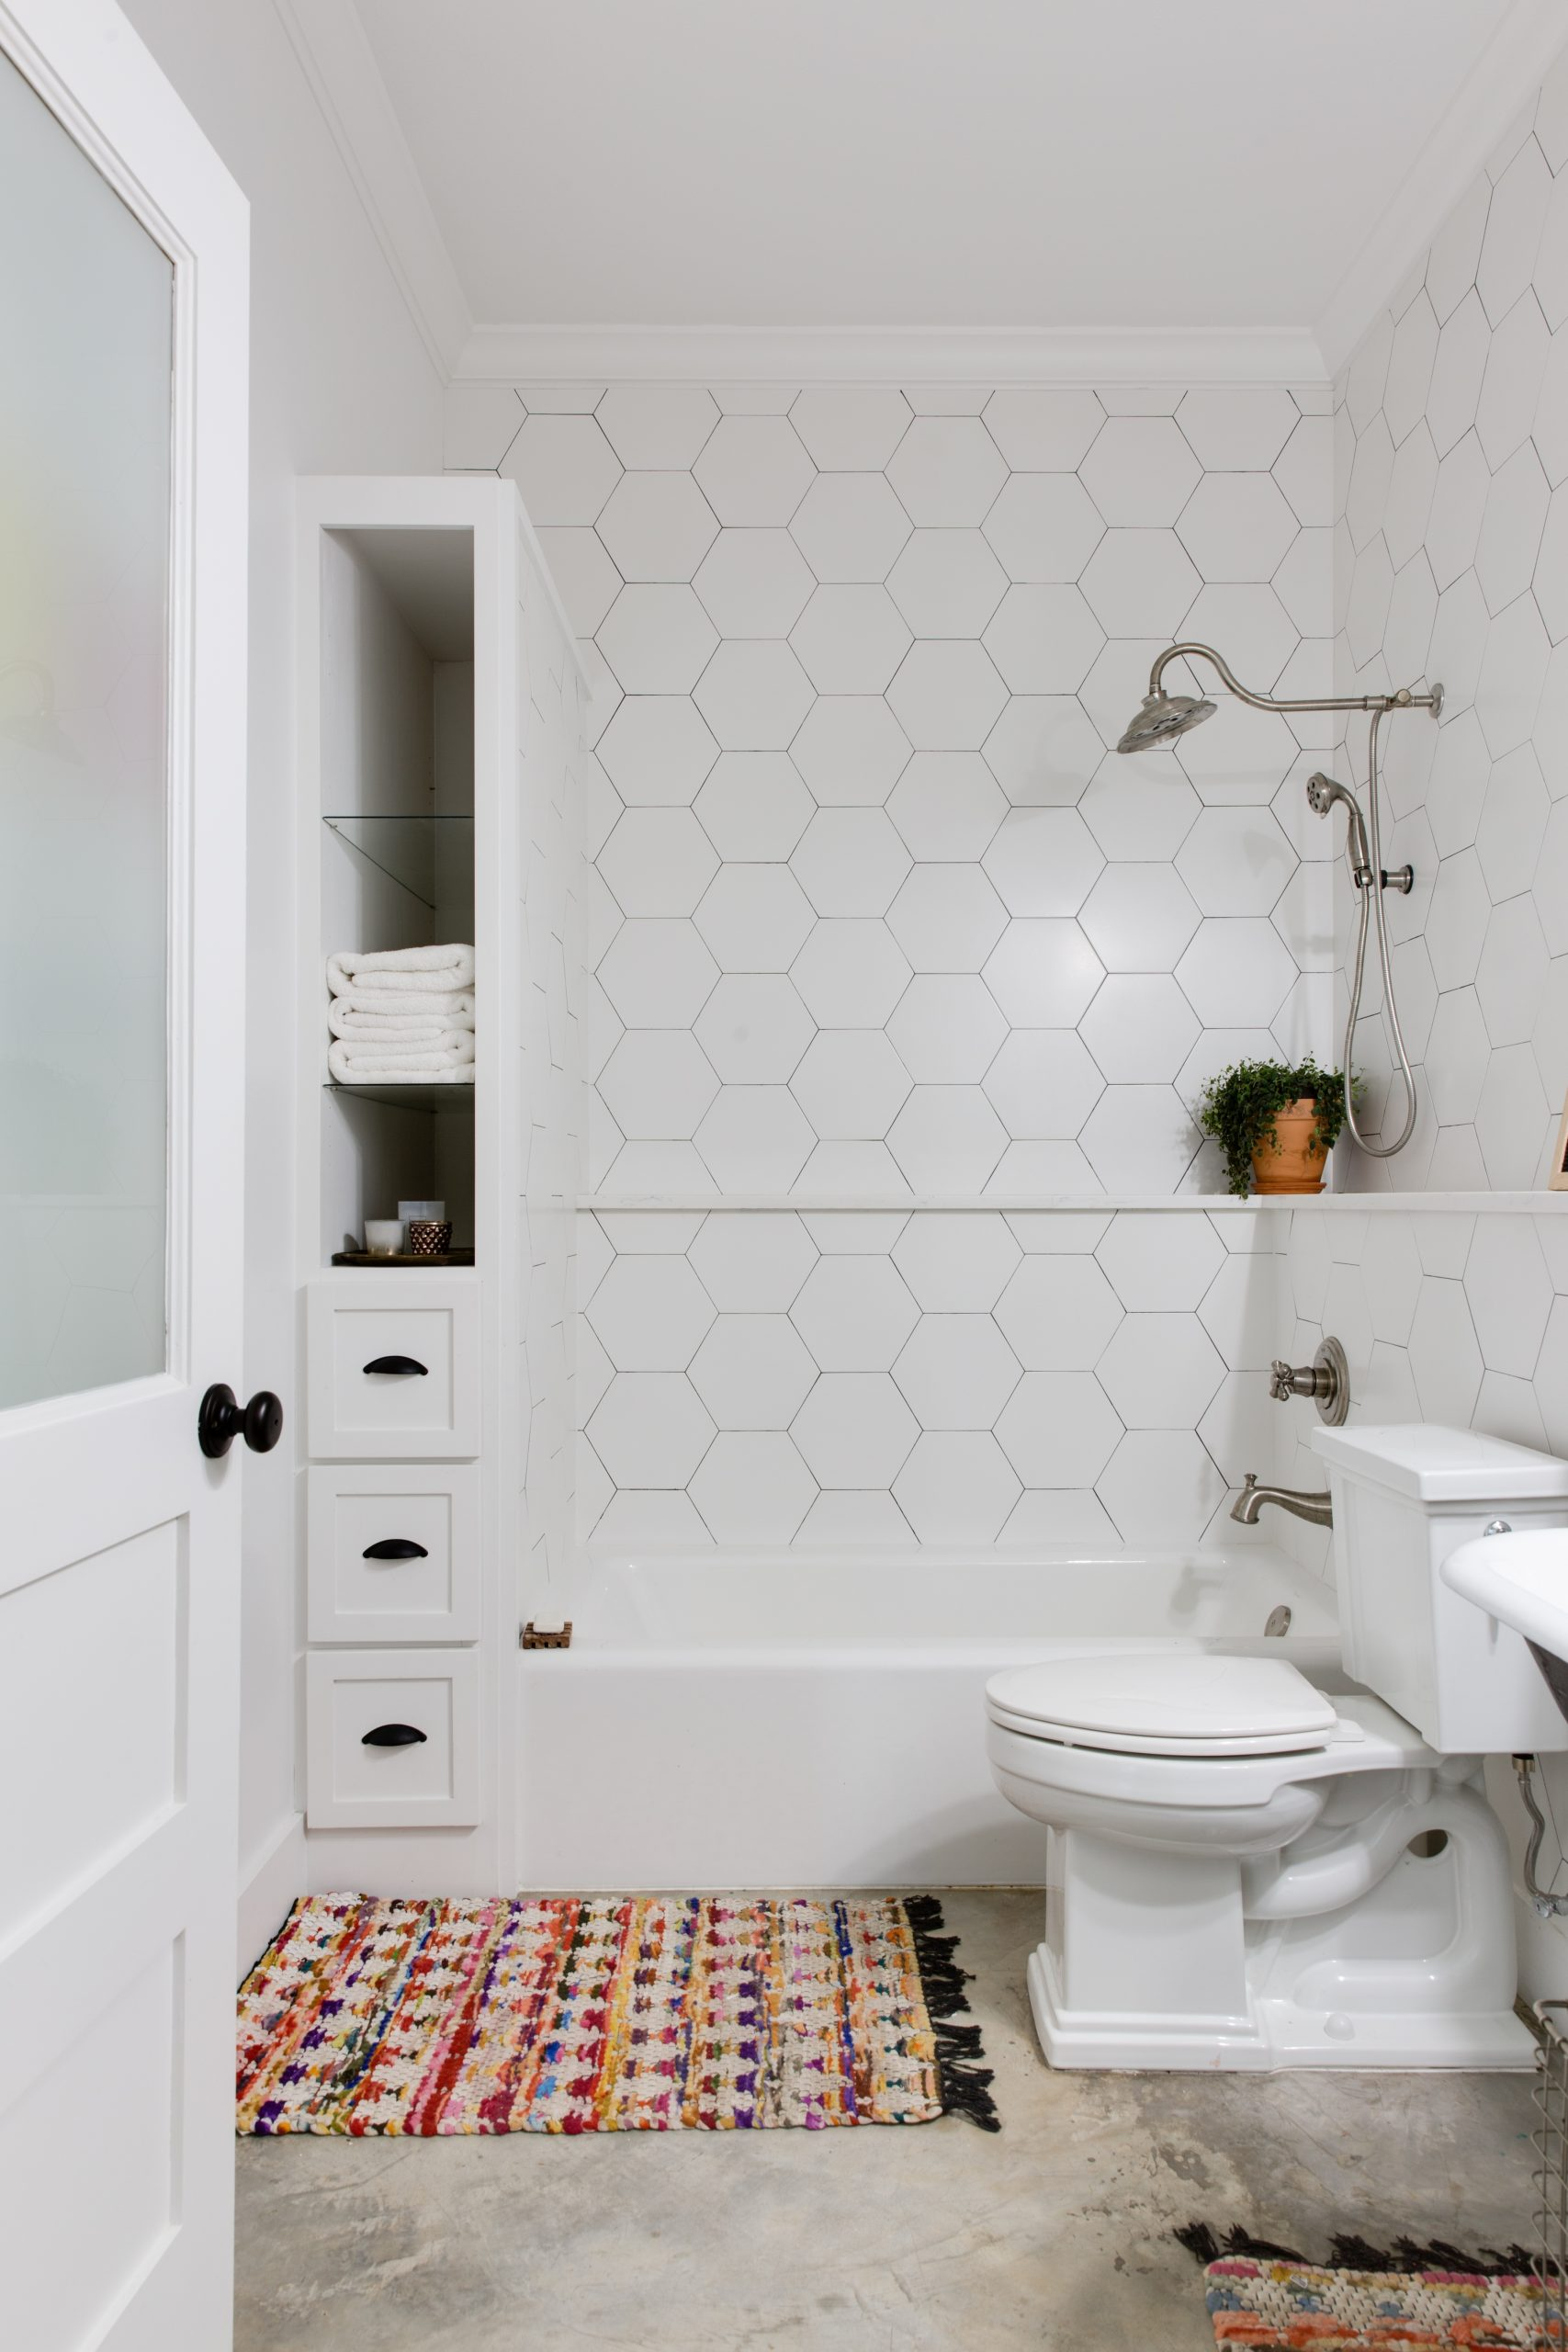 The Best Ways To Brighten Up A Window Free Bathroom Windowless Bathroom Design